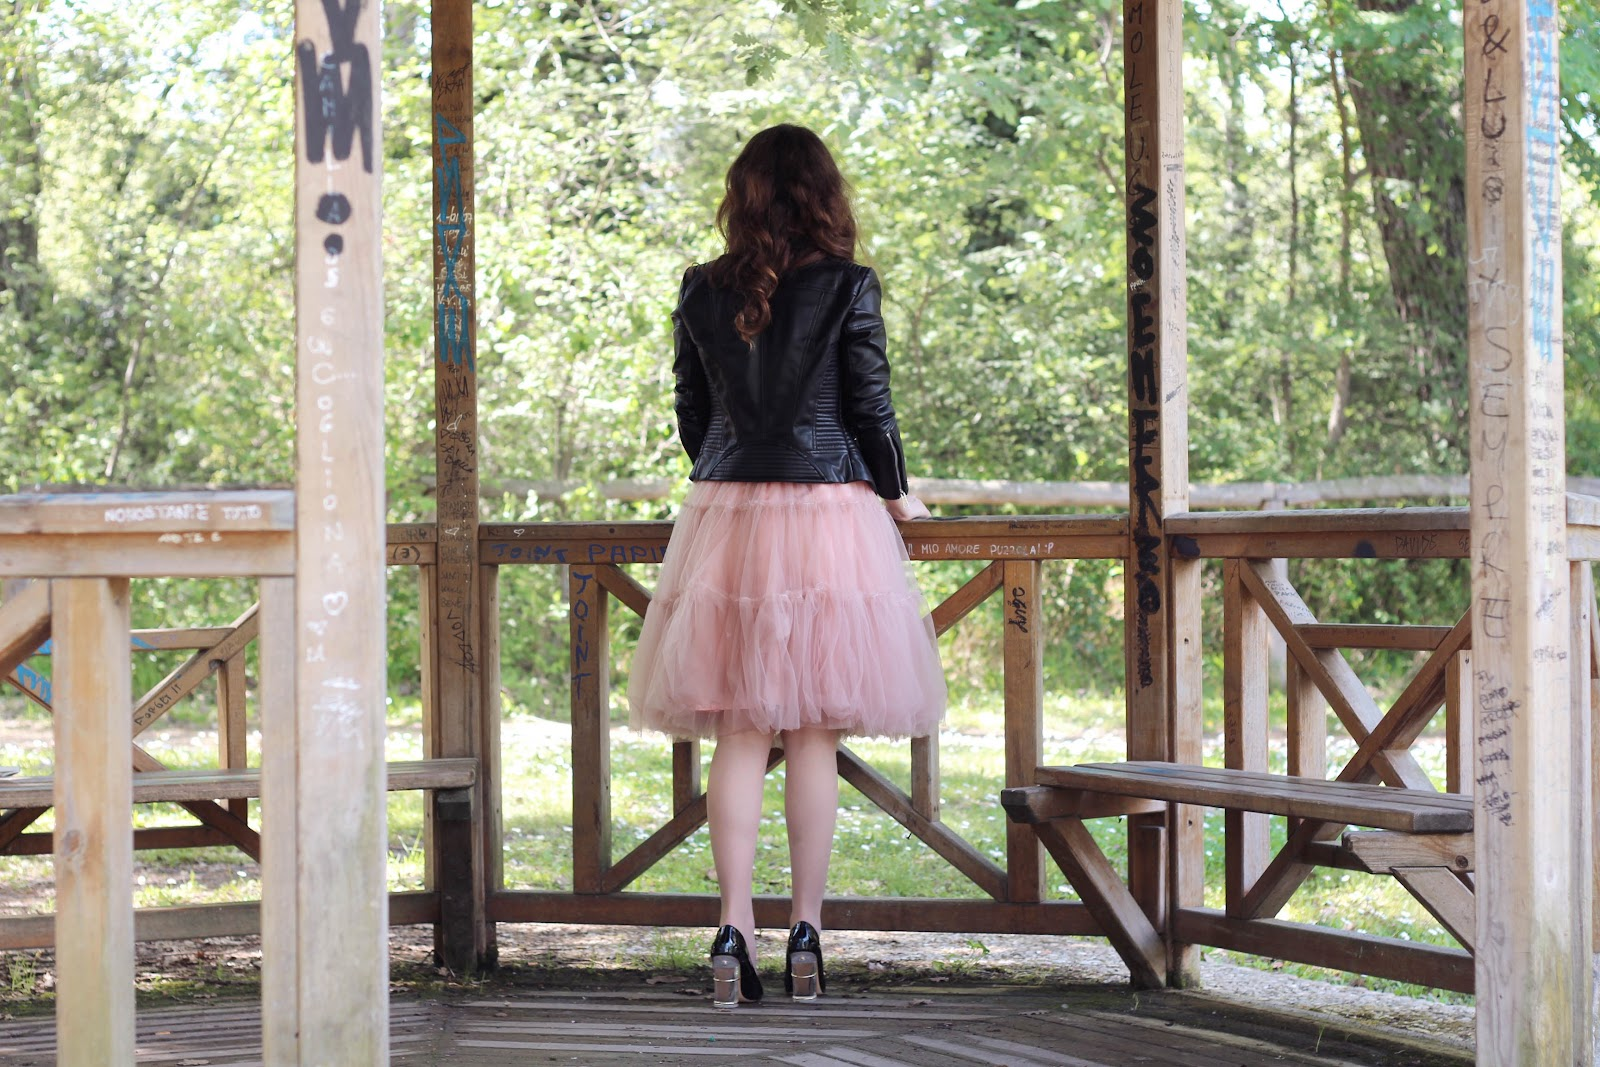 fashion style blogger italian girl italy ootd outfit vogue glamour pescara tulle skirt gonna rosa pink chic wish collana charme bijoux necklace zara heels shoes scarpe tacchi bag borsa jacket leather giacca chiodo pelle look rock chic